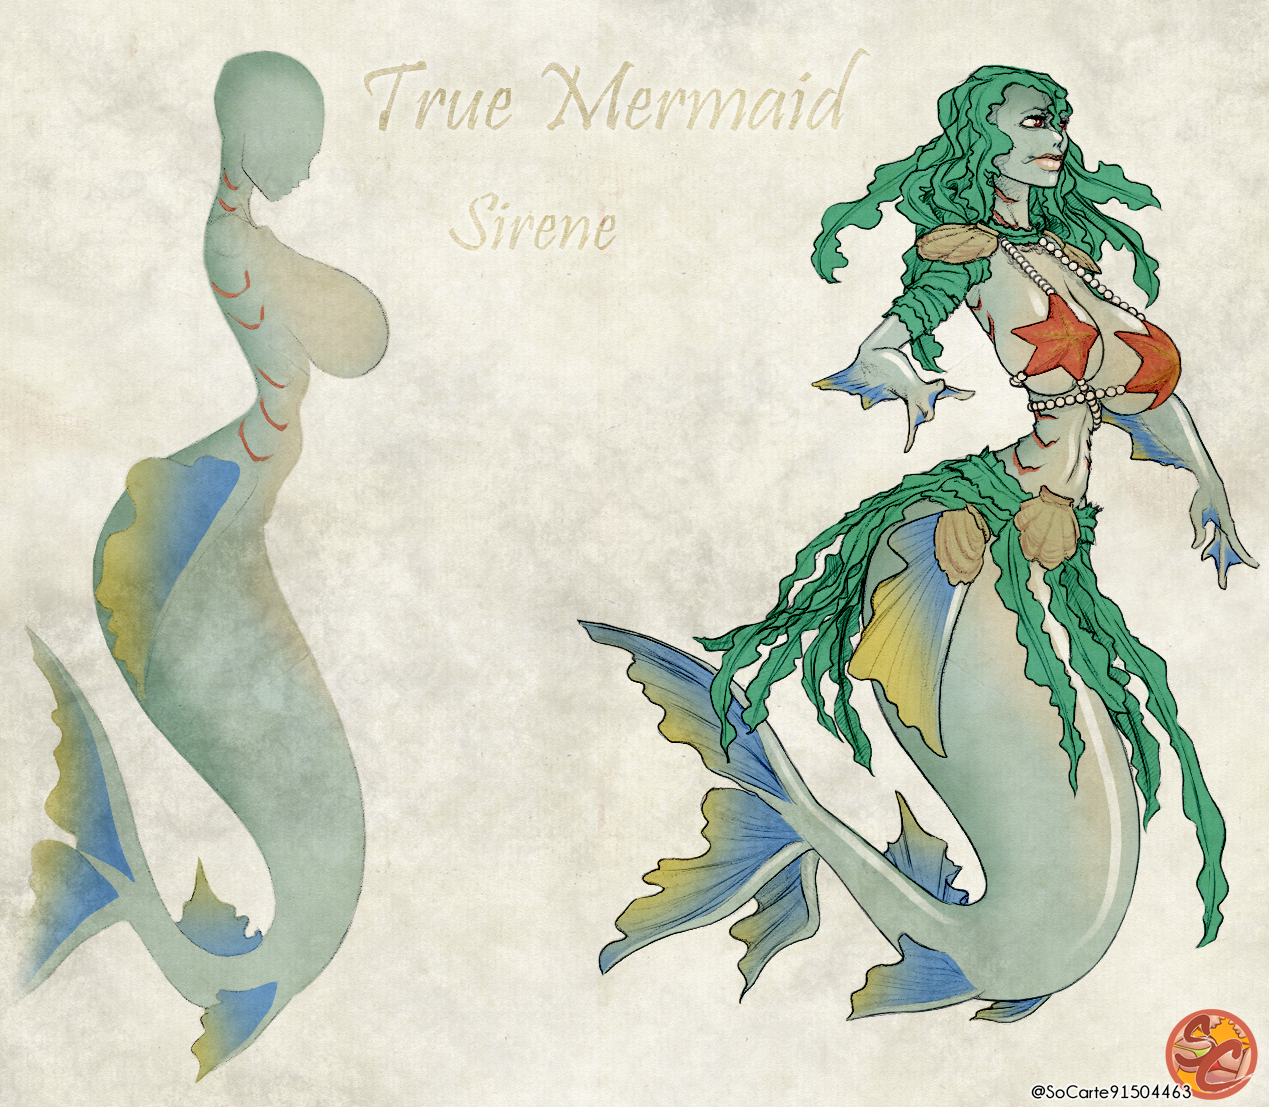 A different kind of p*rny mermaid